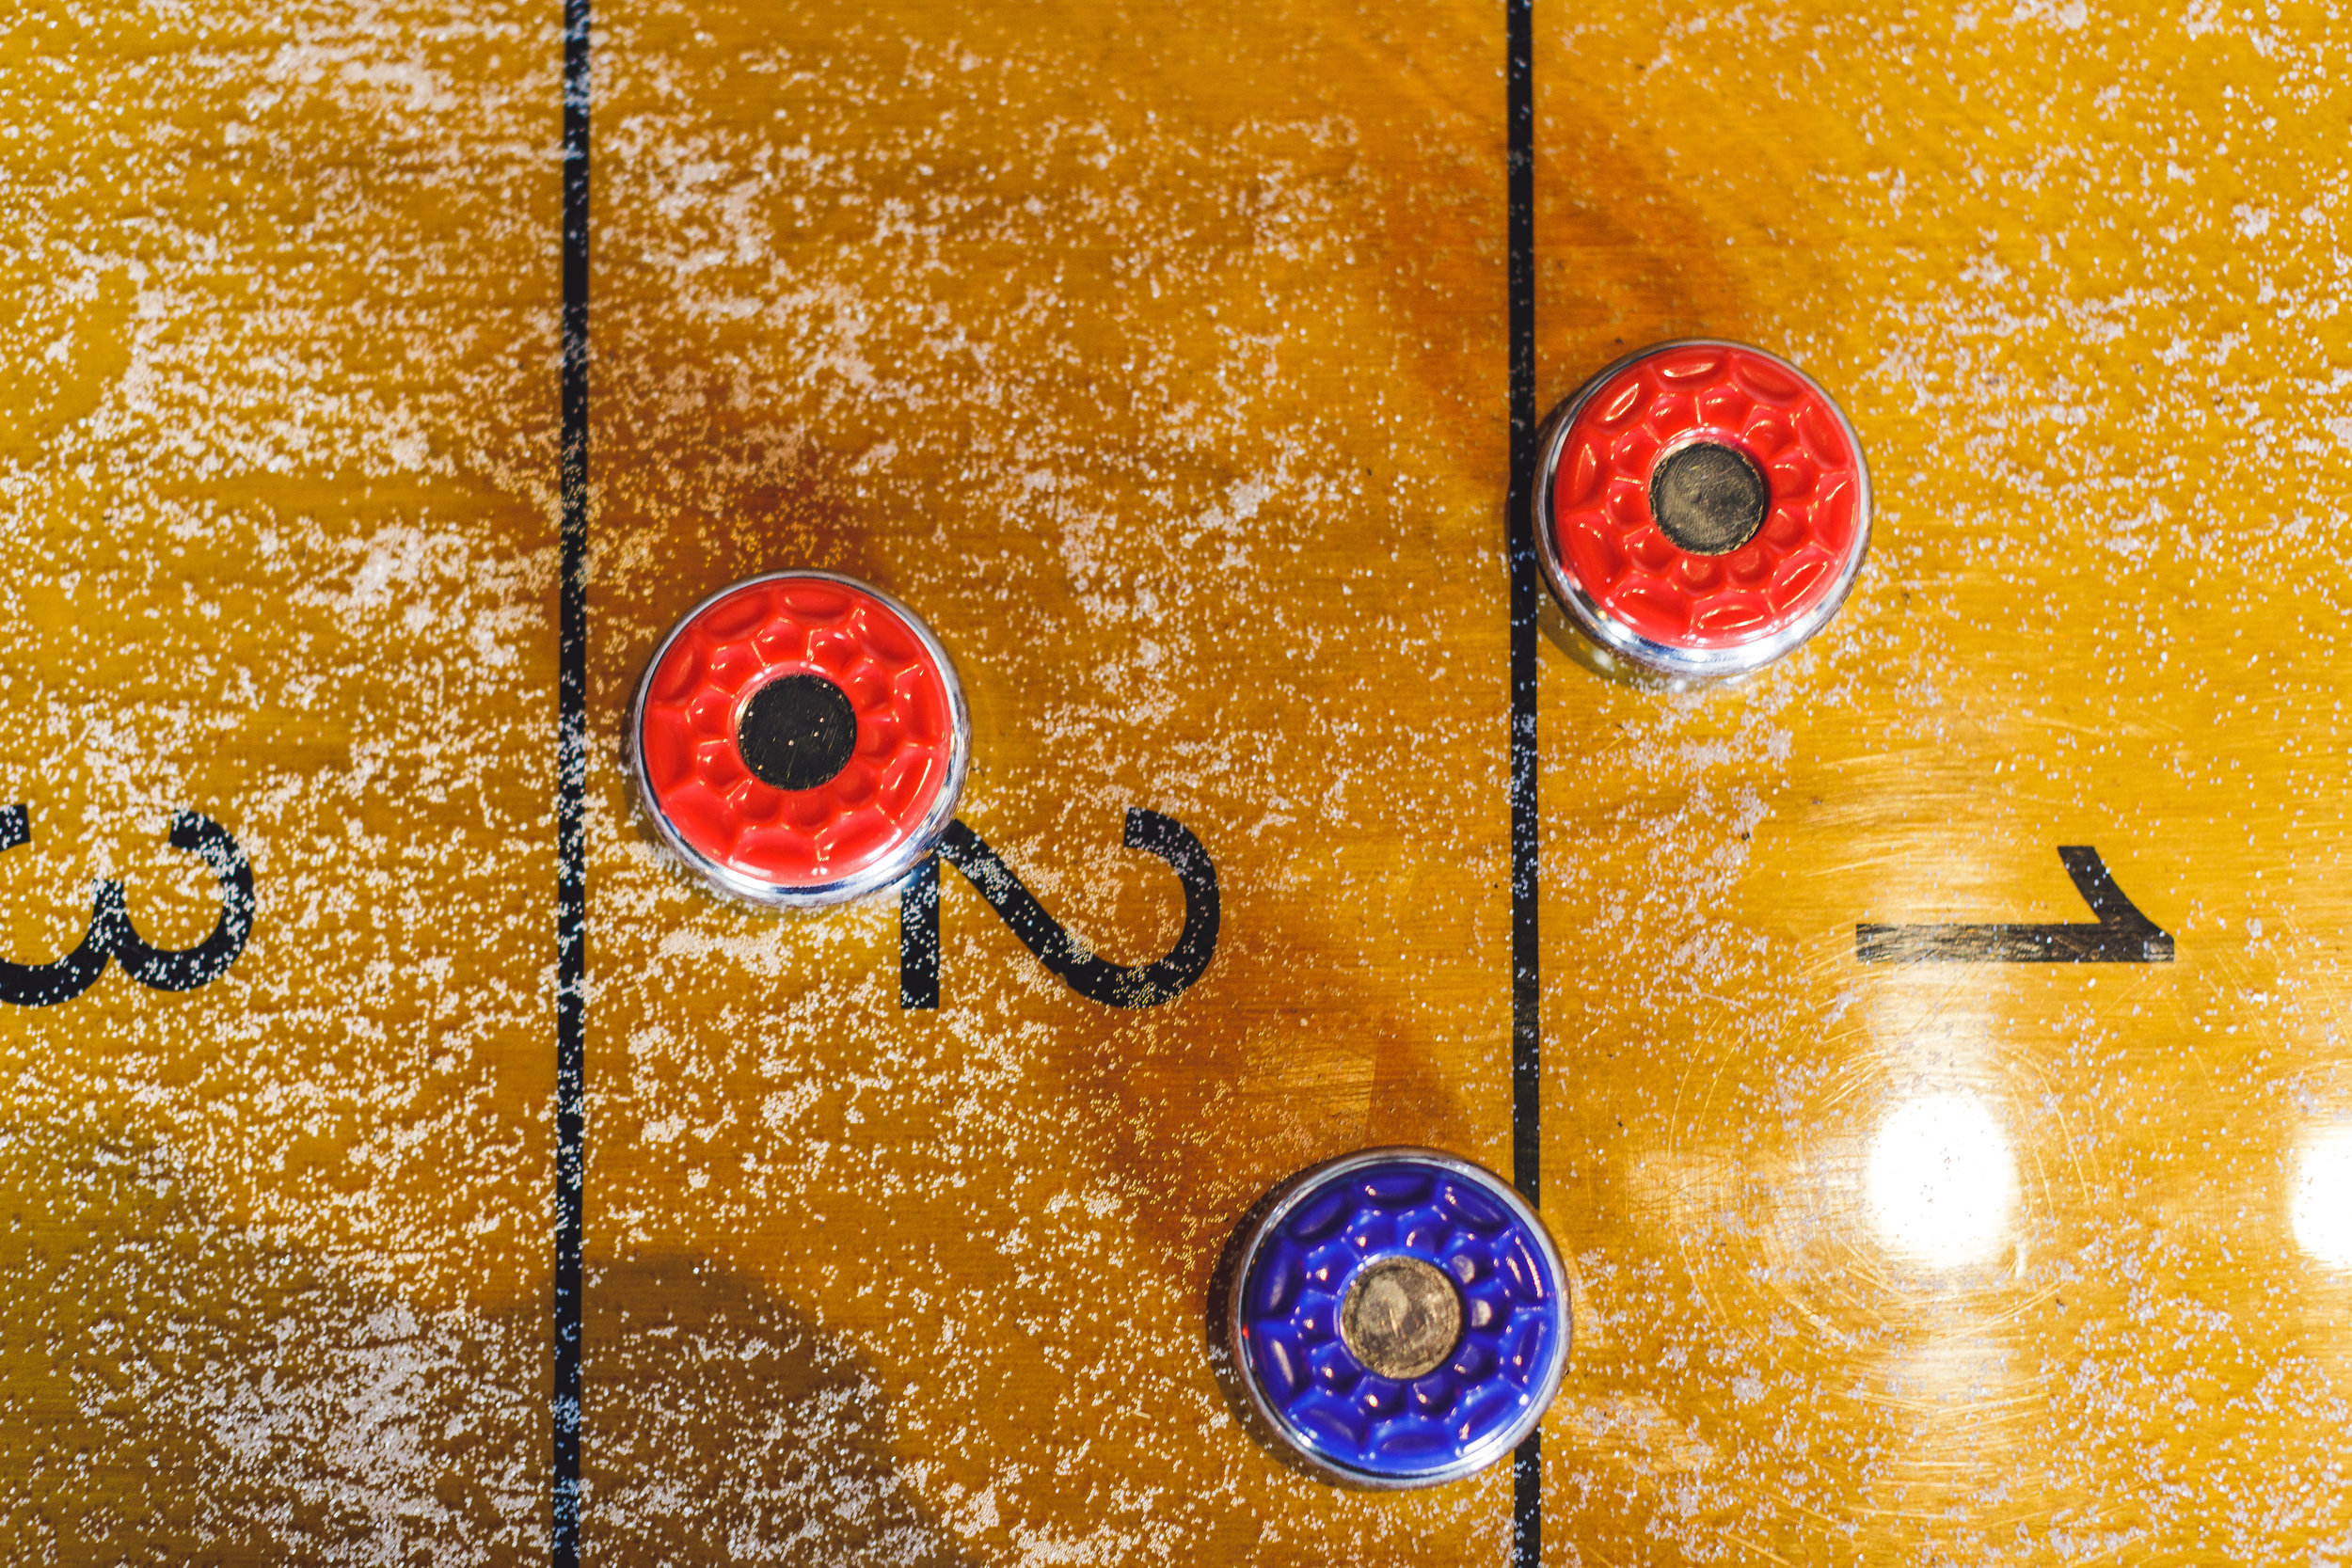 TABLETOP SHUFFLEBOARD - It's like Olympic curling…but without the frozen toes and all that frantic sweeping. With a little finesse, anyone can play and win at this barroom favorite.